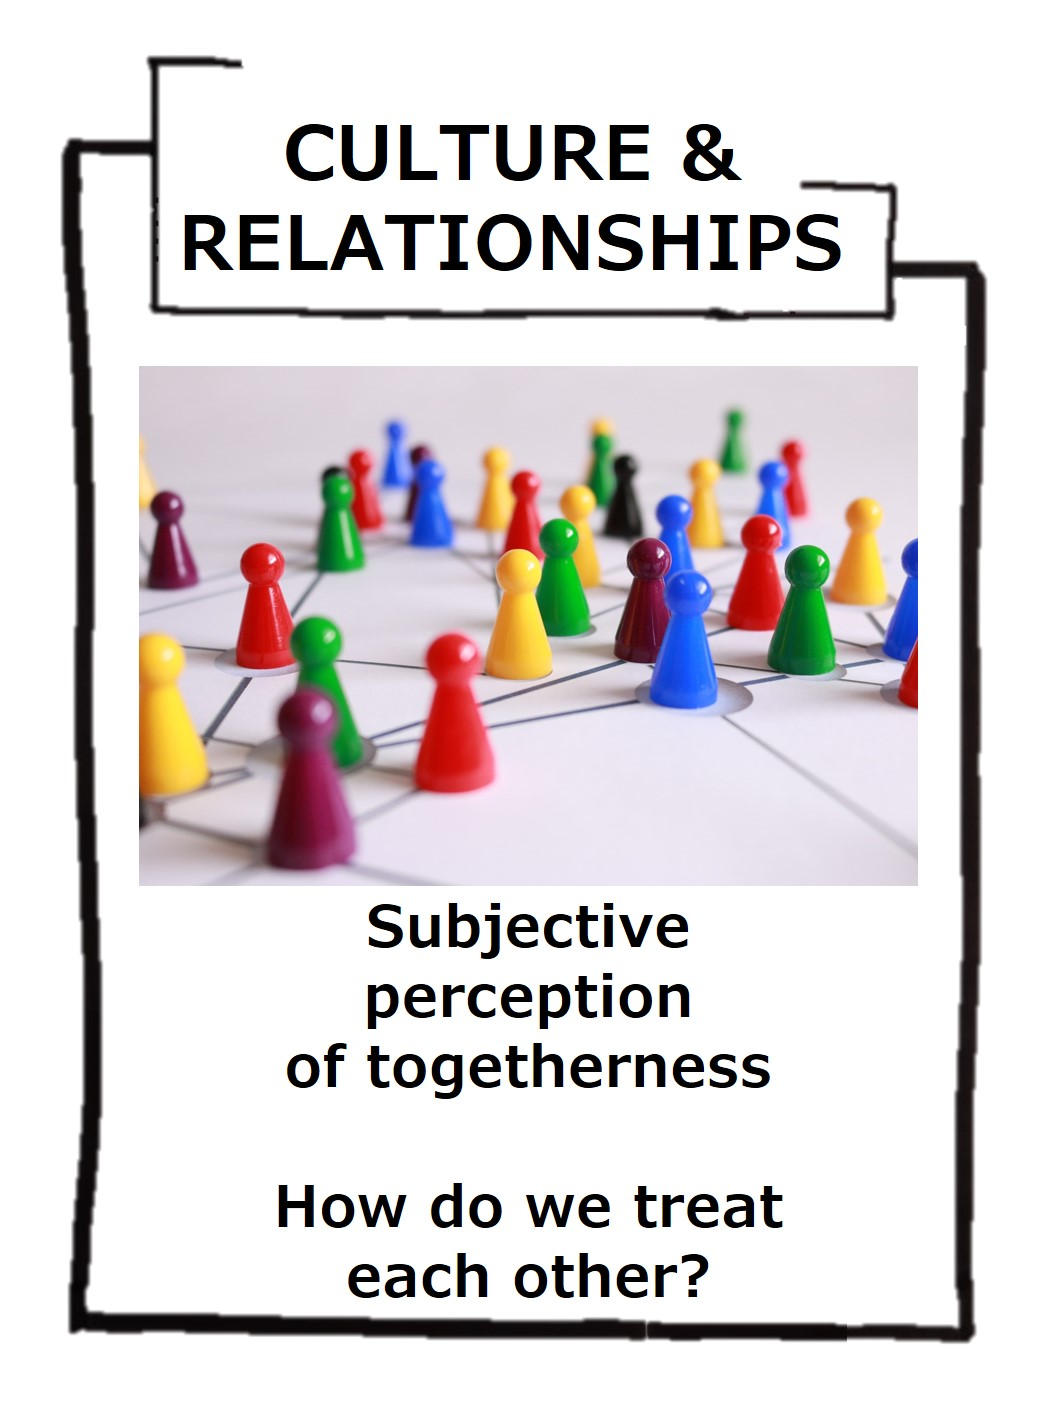 culture and relationships are related